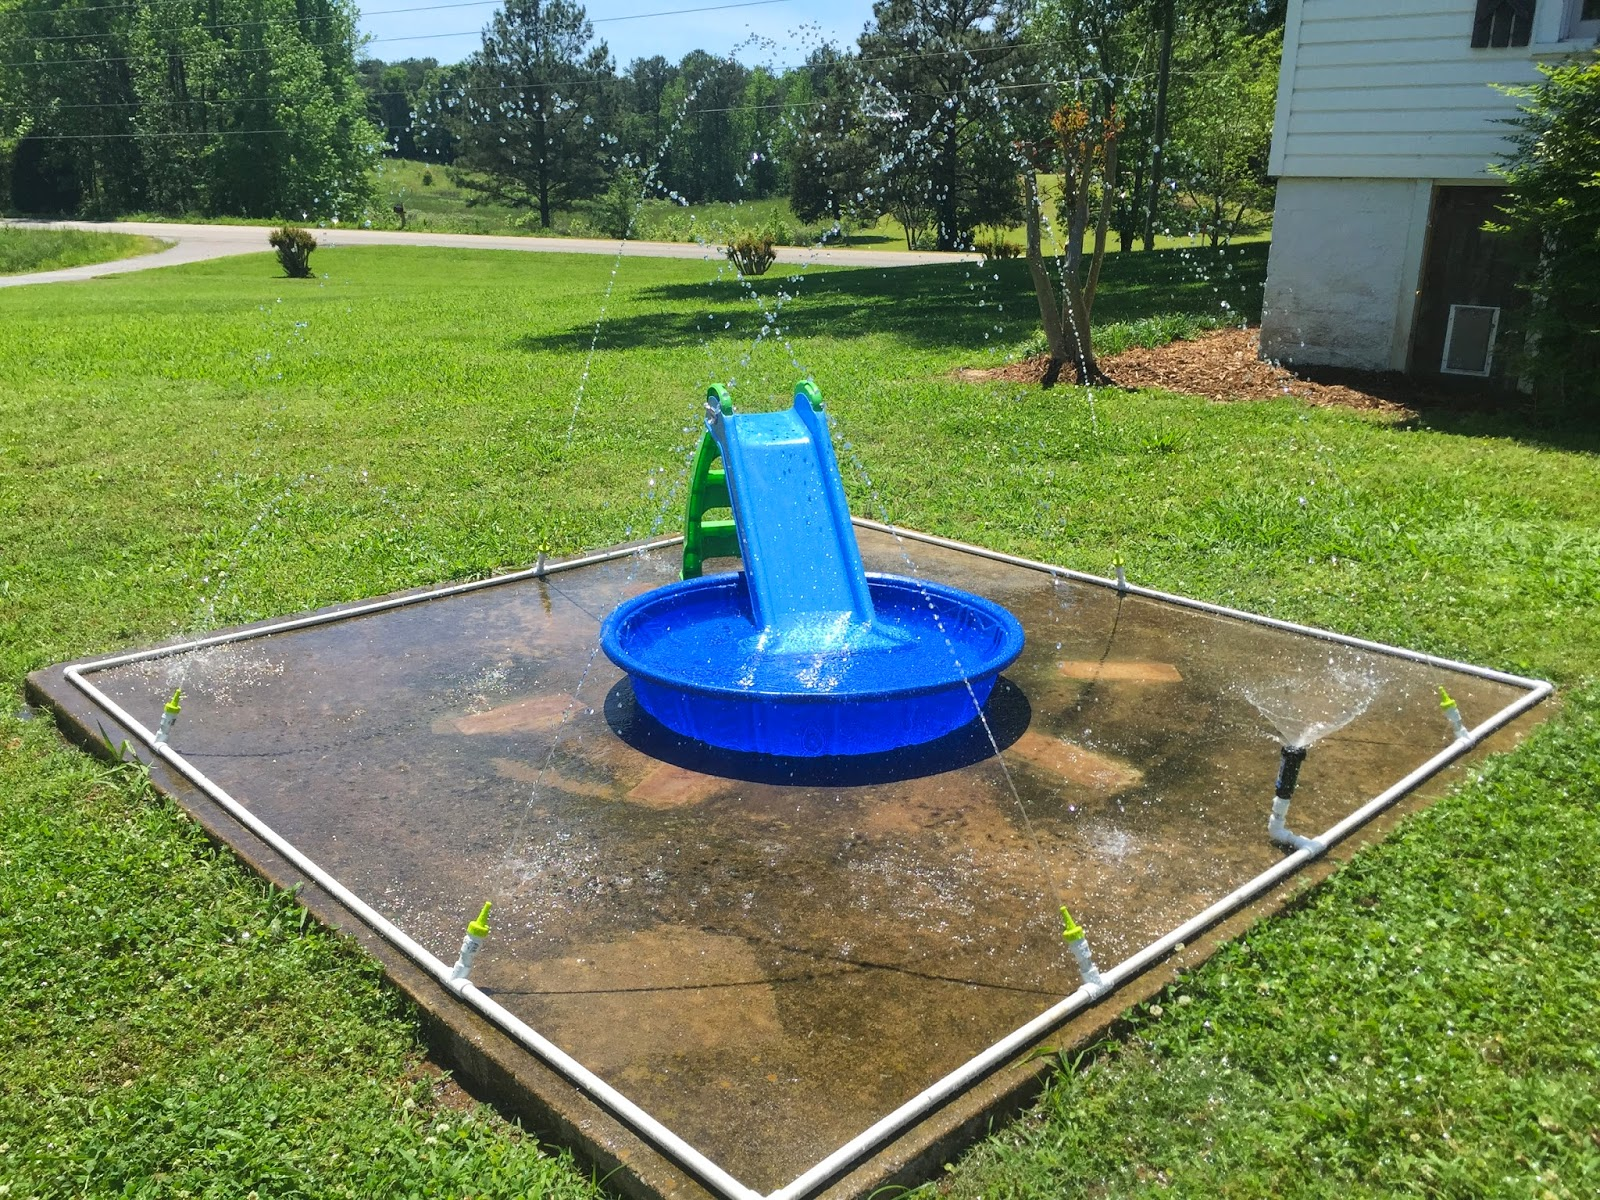 DIY Splash Pad: Tips and Tricks for Making Your Own